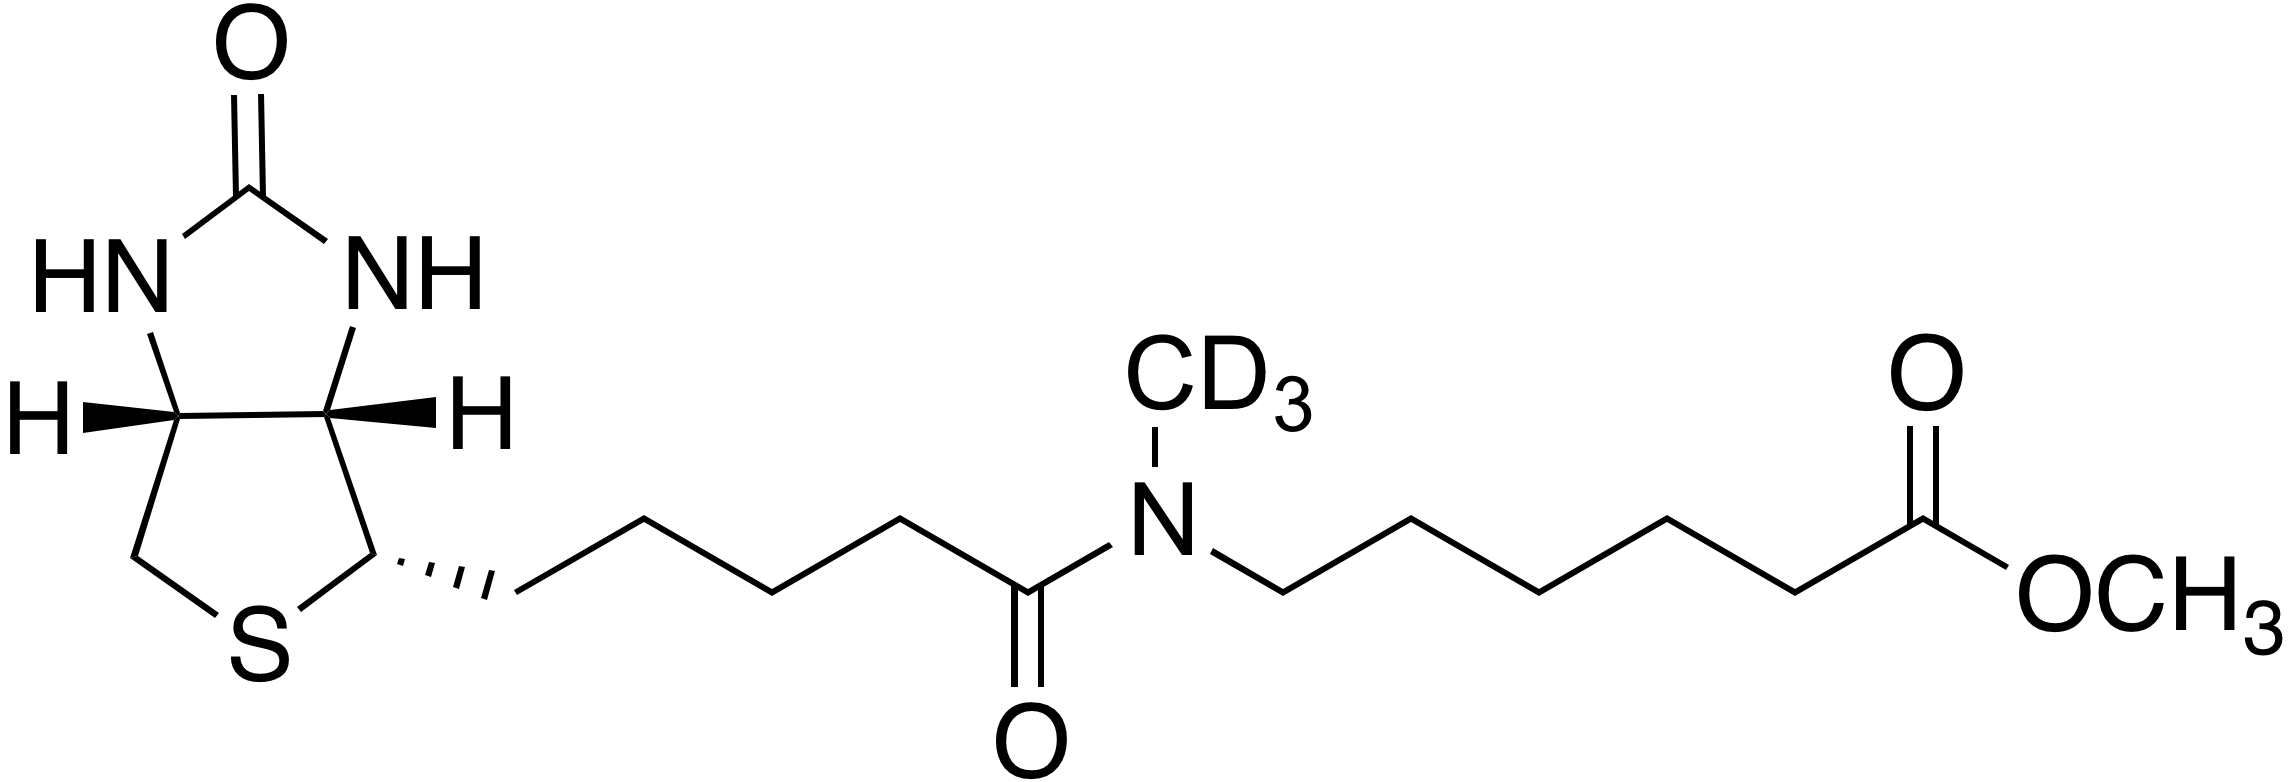 N-Methyl-d<sub>3</sub>-6-biotinylaminohexanoic acid methyl ester